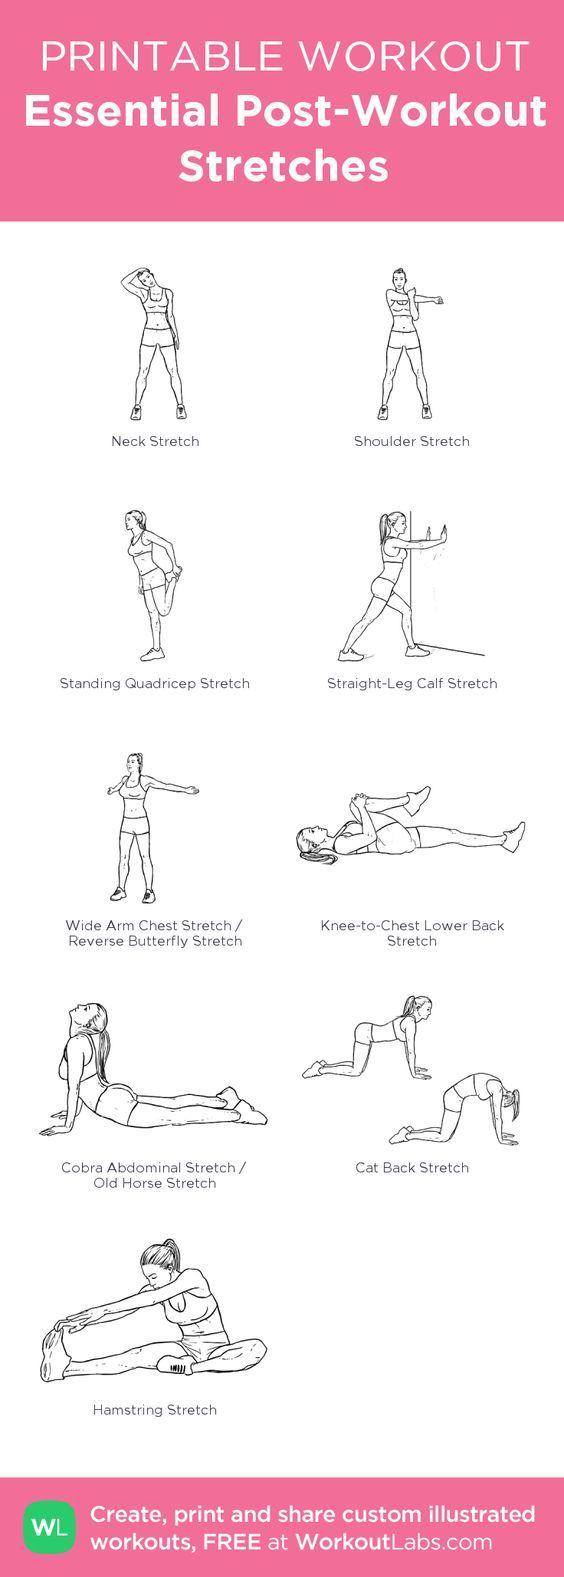 Essential Post-Workout Stretches Infographic